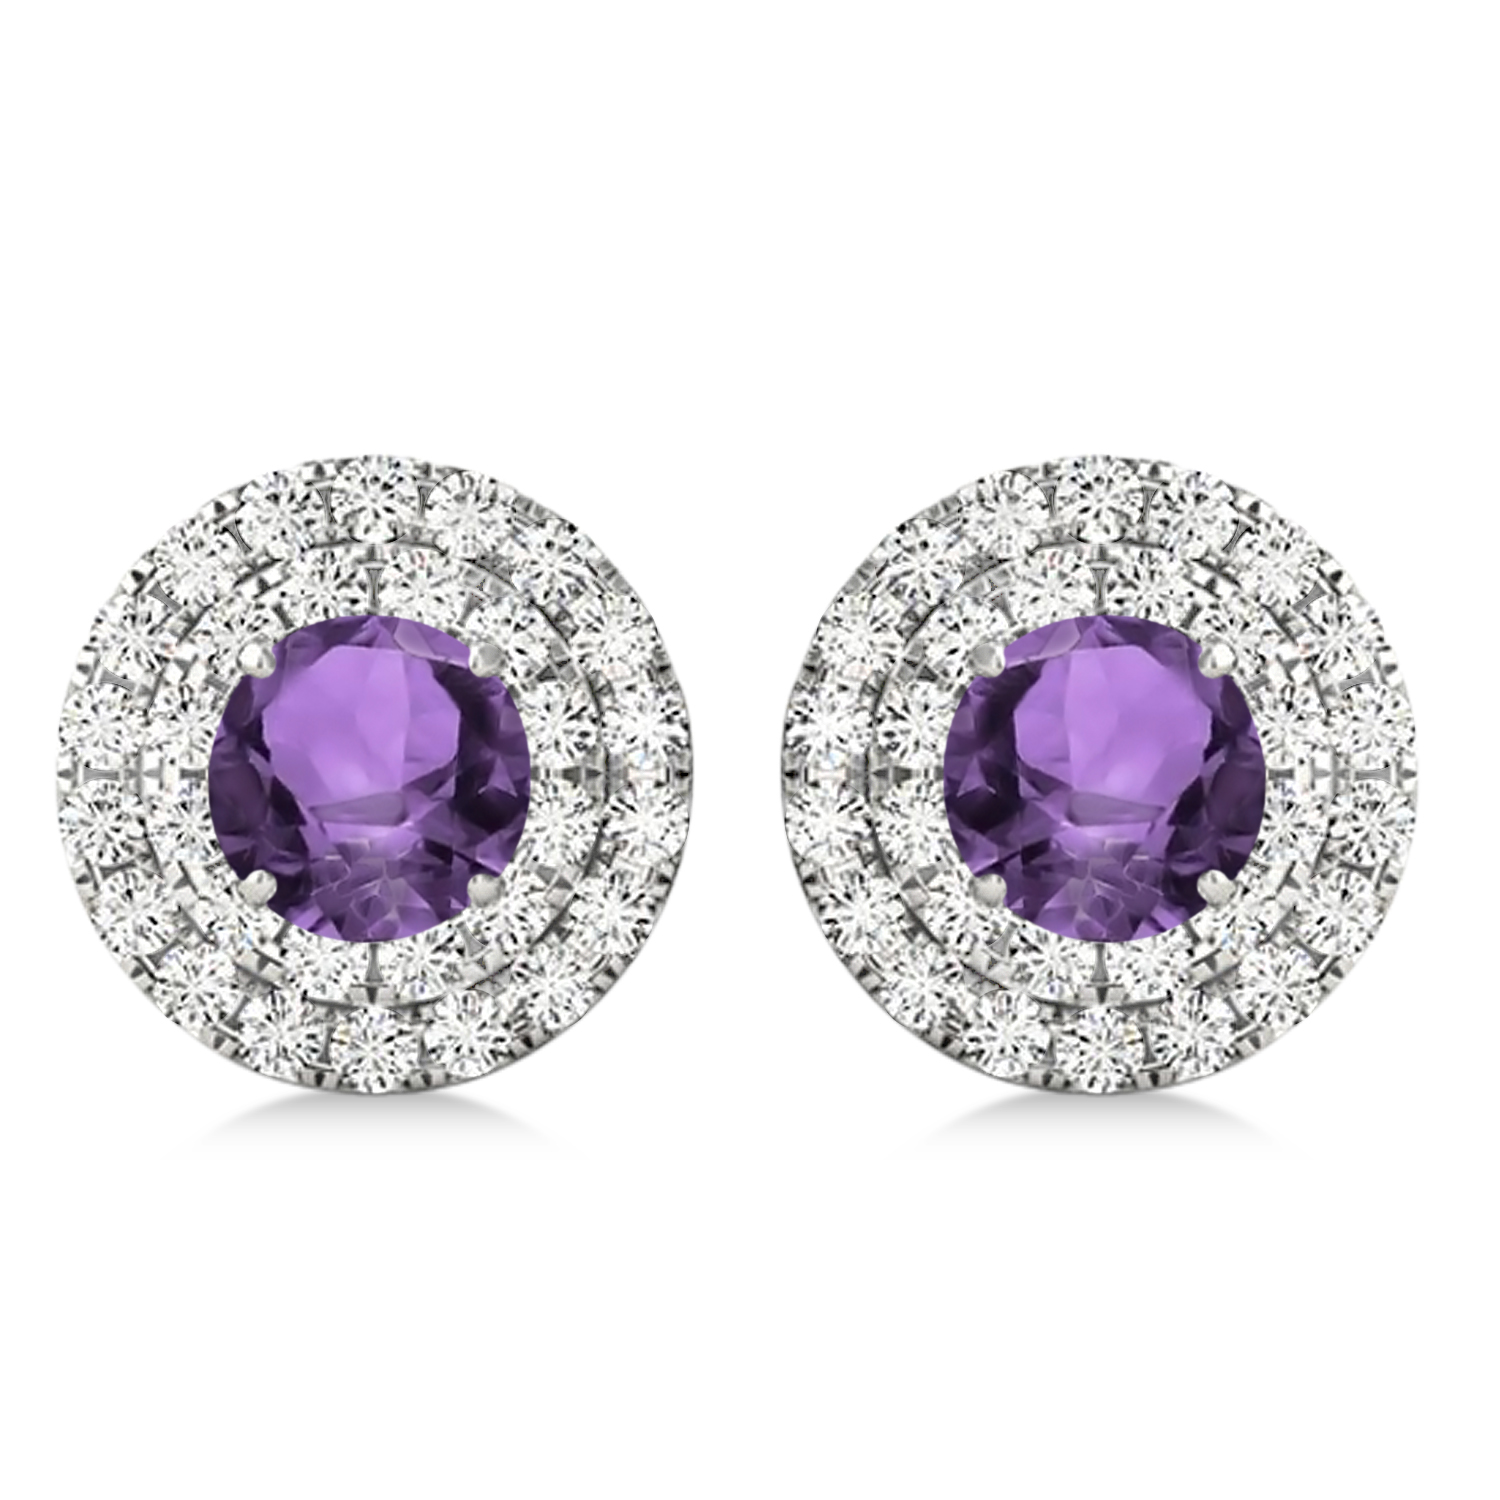 Round Double Halo Diamond & Amethyst Earrings 14k White Gold 1.25ct